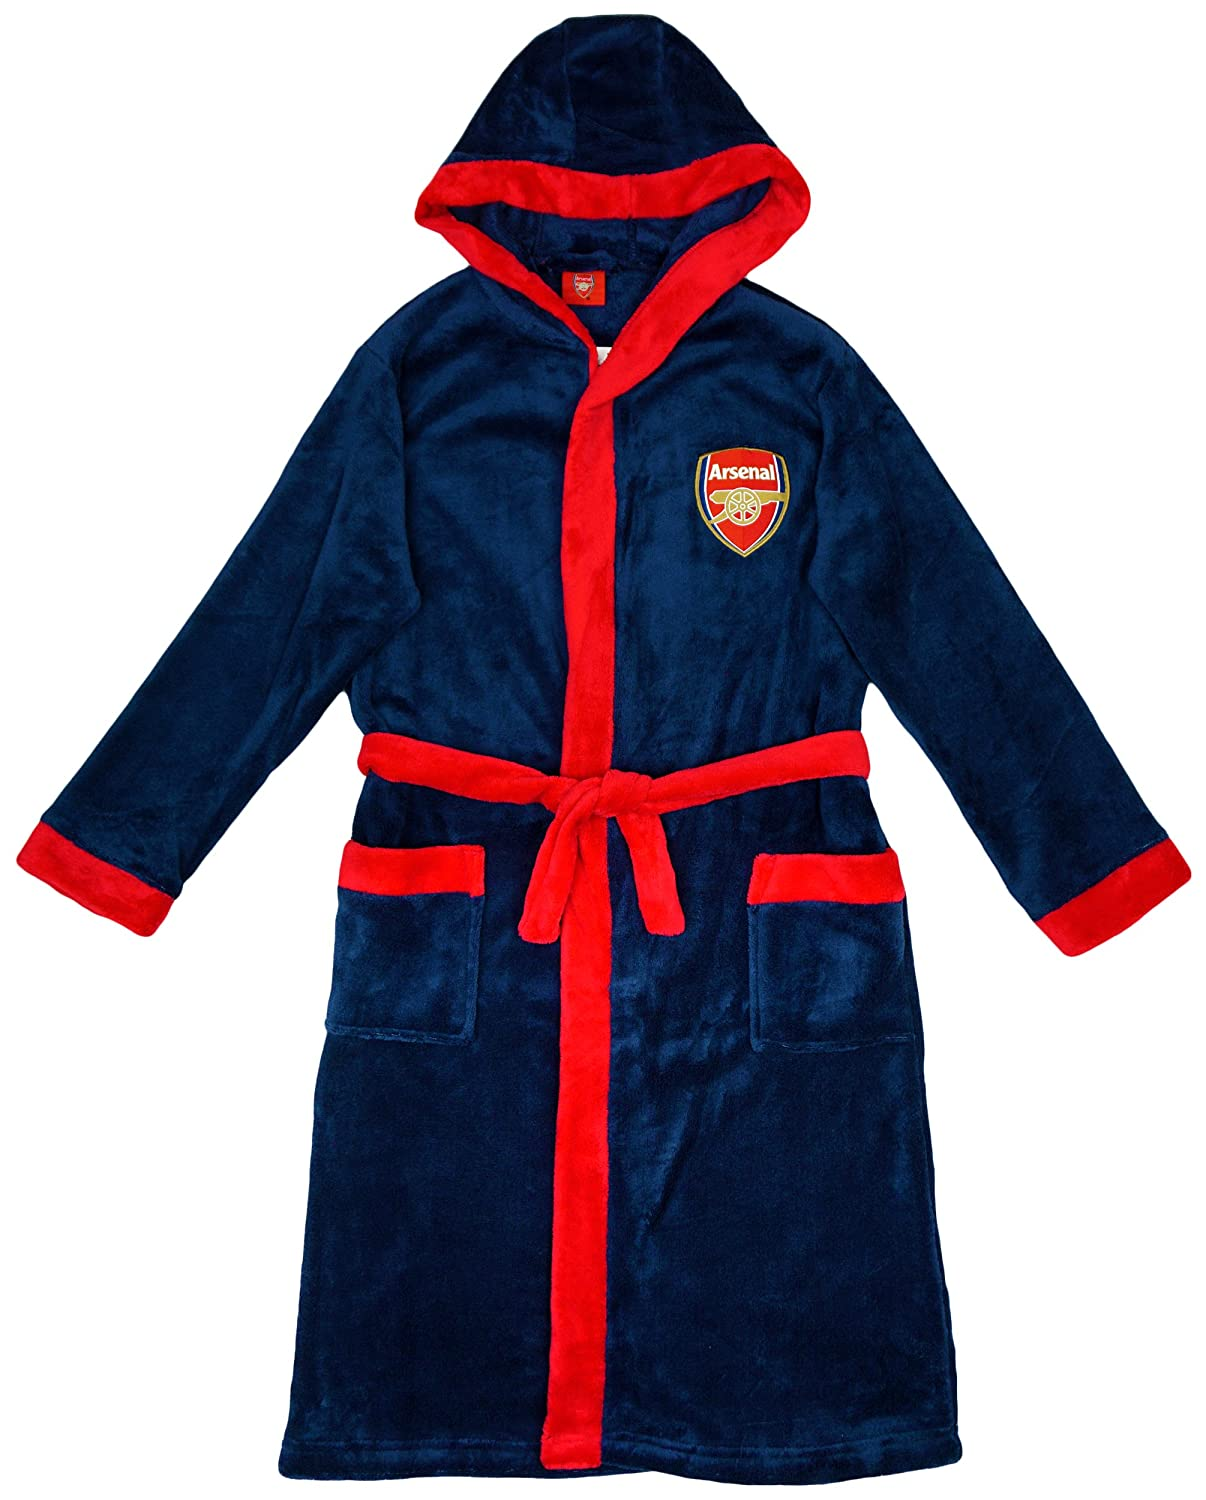 Boys Official Arsenal FC Gunners Hooded Dressing Gown Bath Robe sizes from 3 to 13 Years